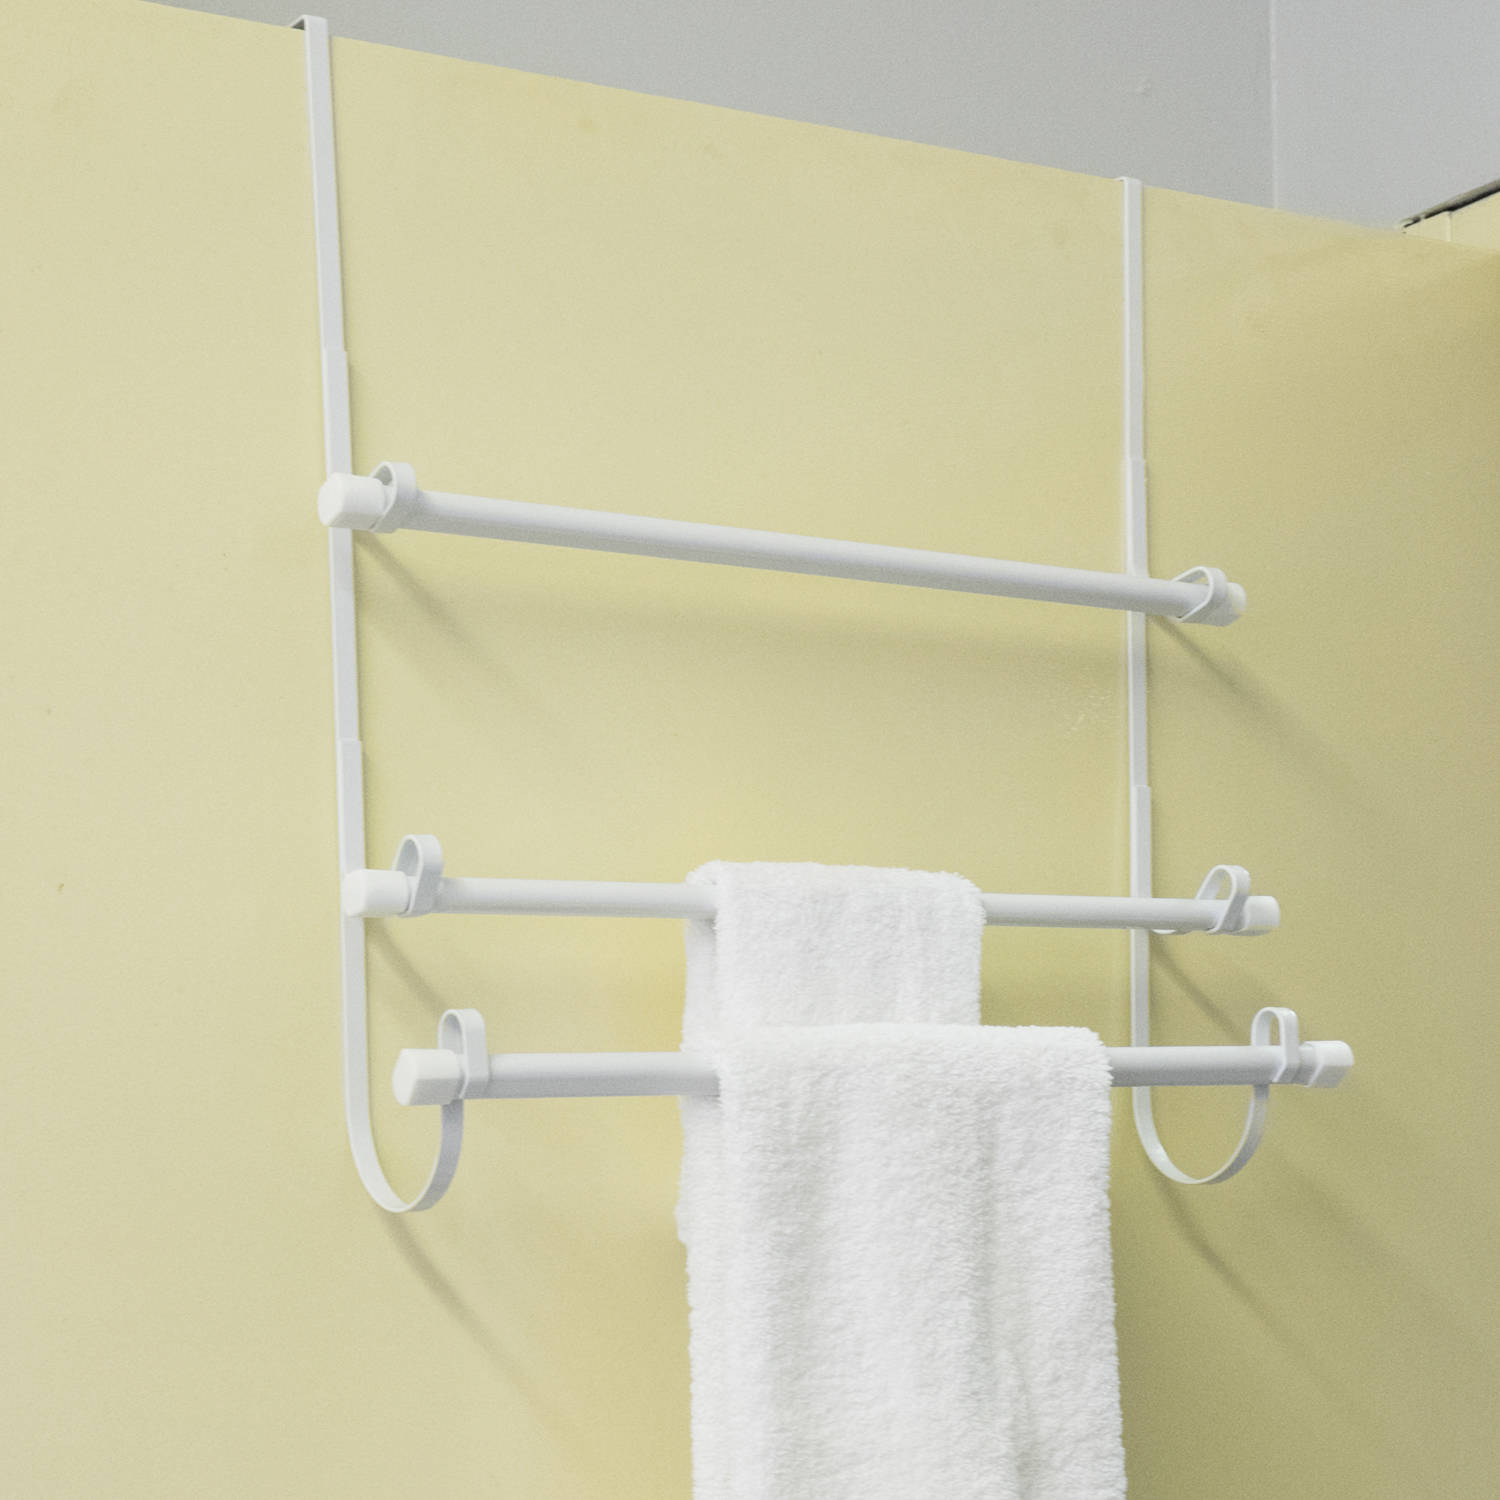 Incroyable Epoxy Steel Over The Door Bathroom White Towel Hanger Organizer, 3 Bar Rack